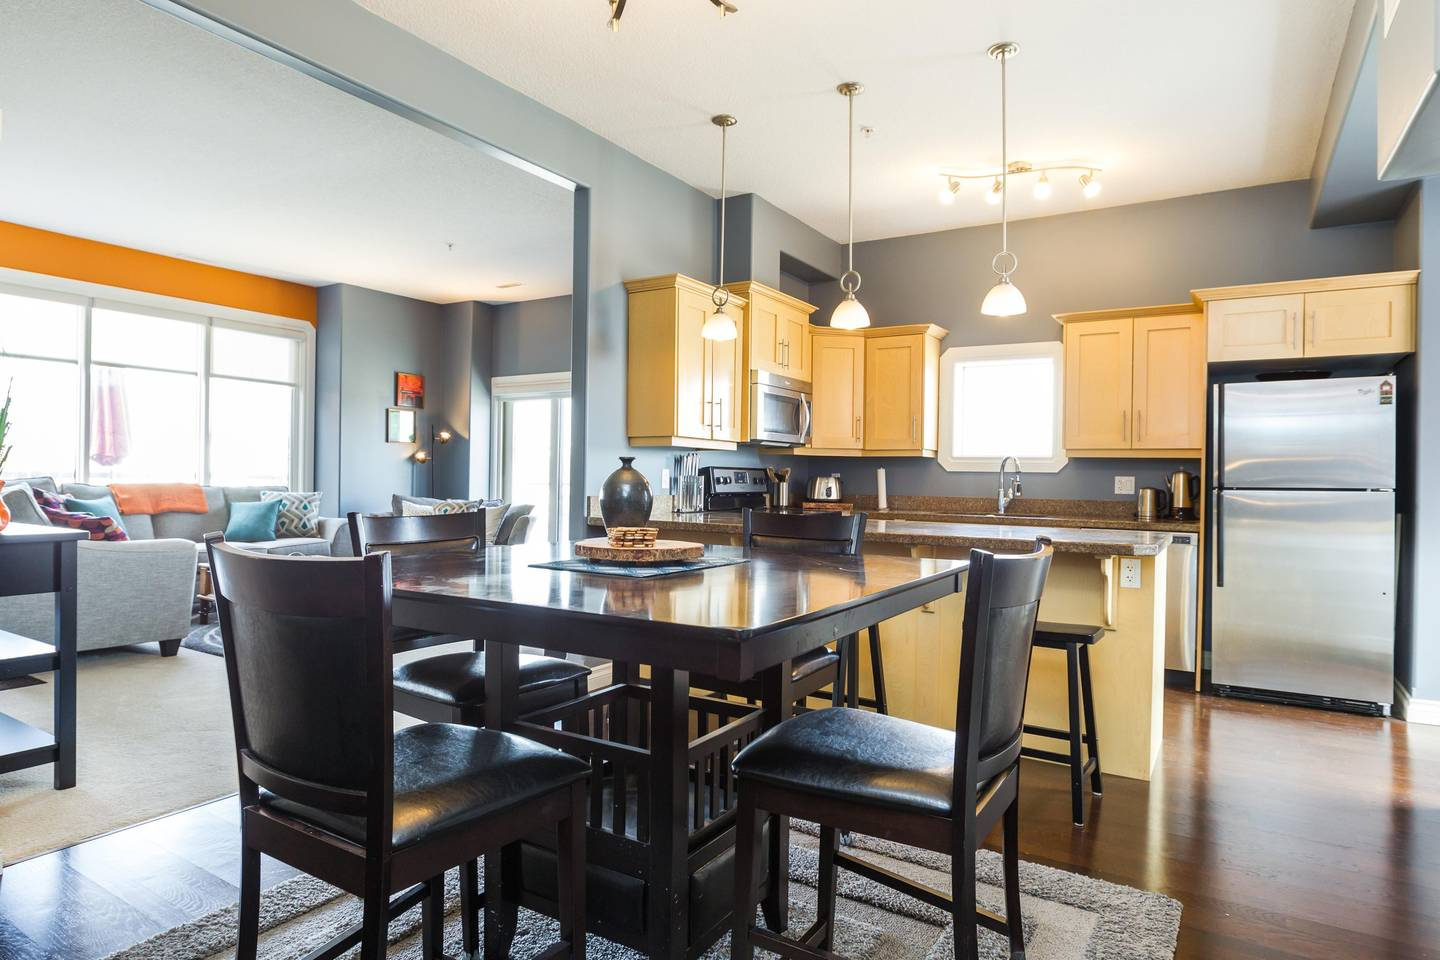 Apartment Luxury  2 Story Condo Near Rogers Place  Downtown photo 25966051